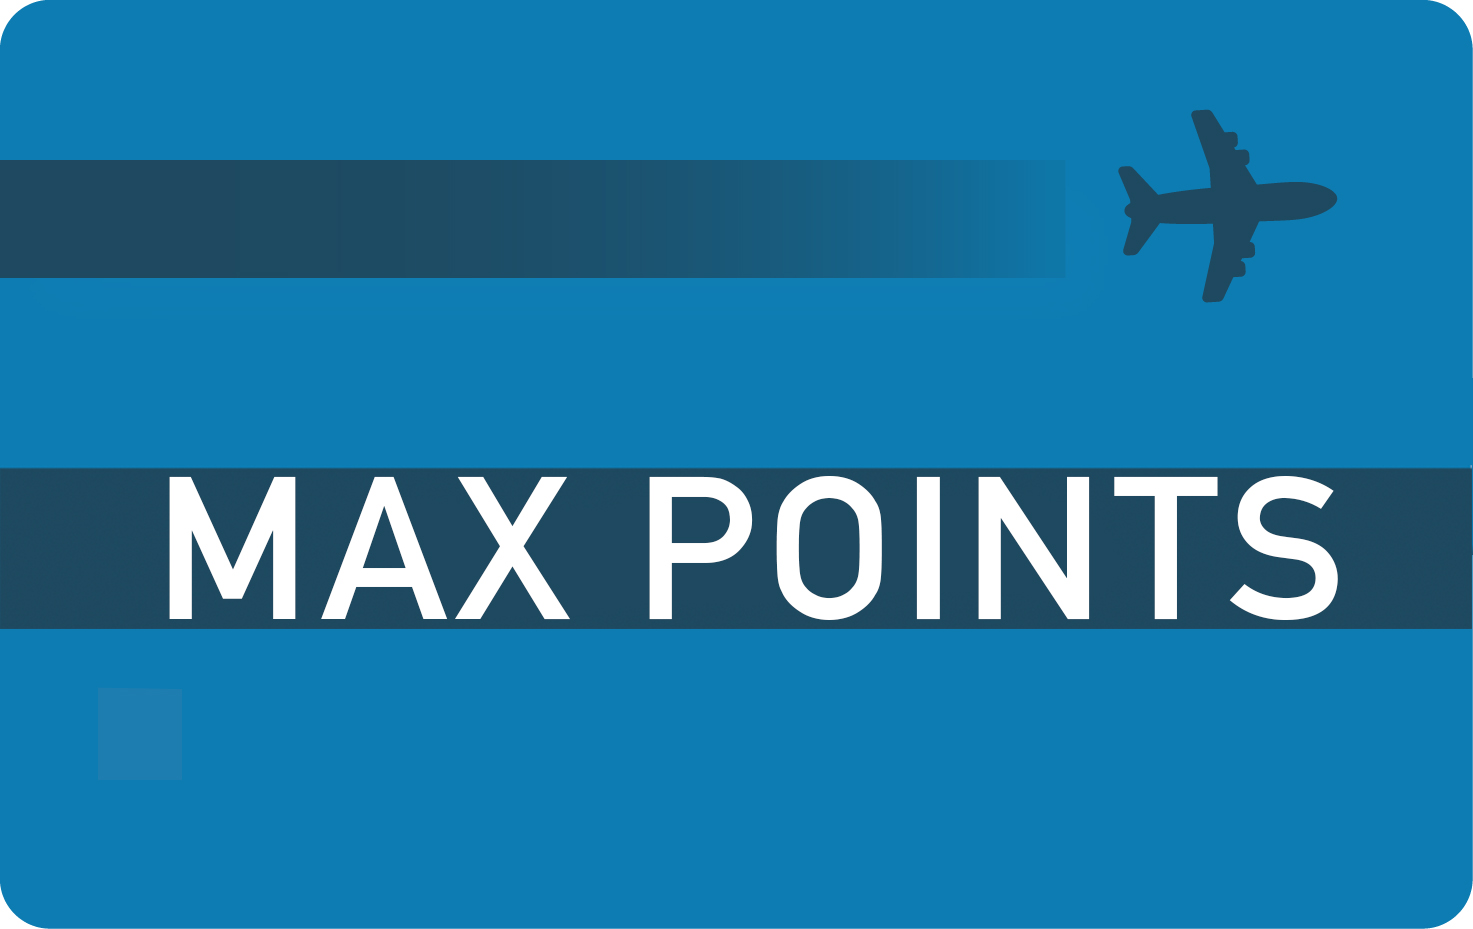 Max Points